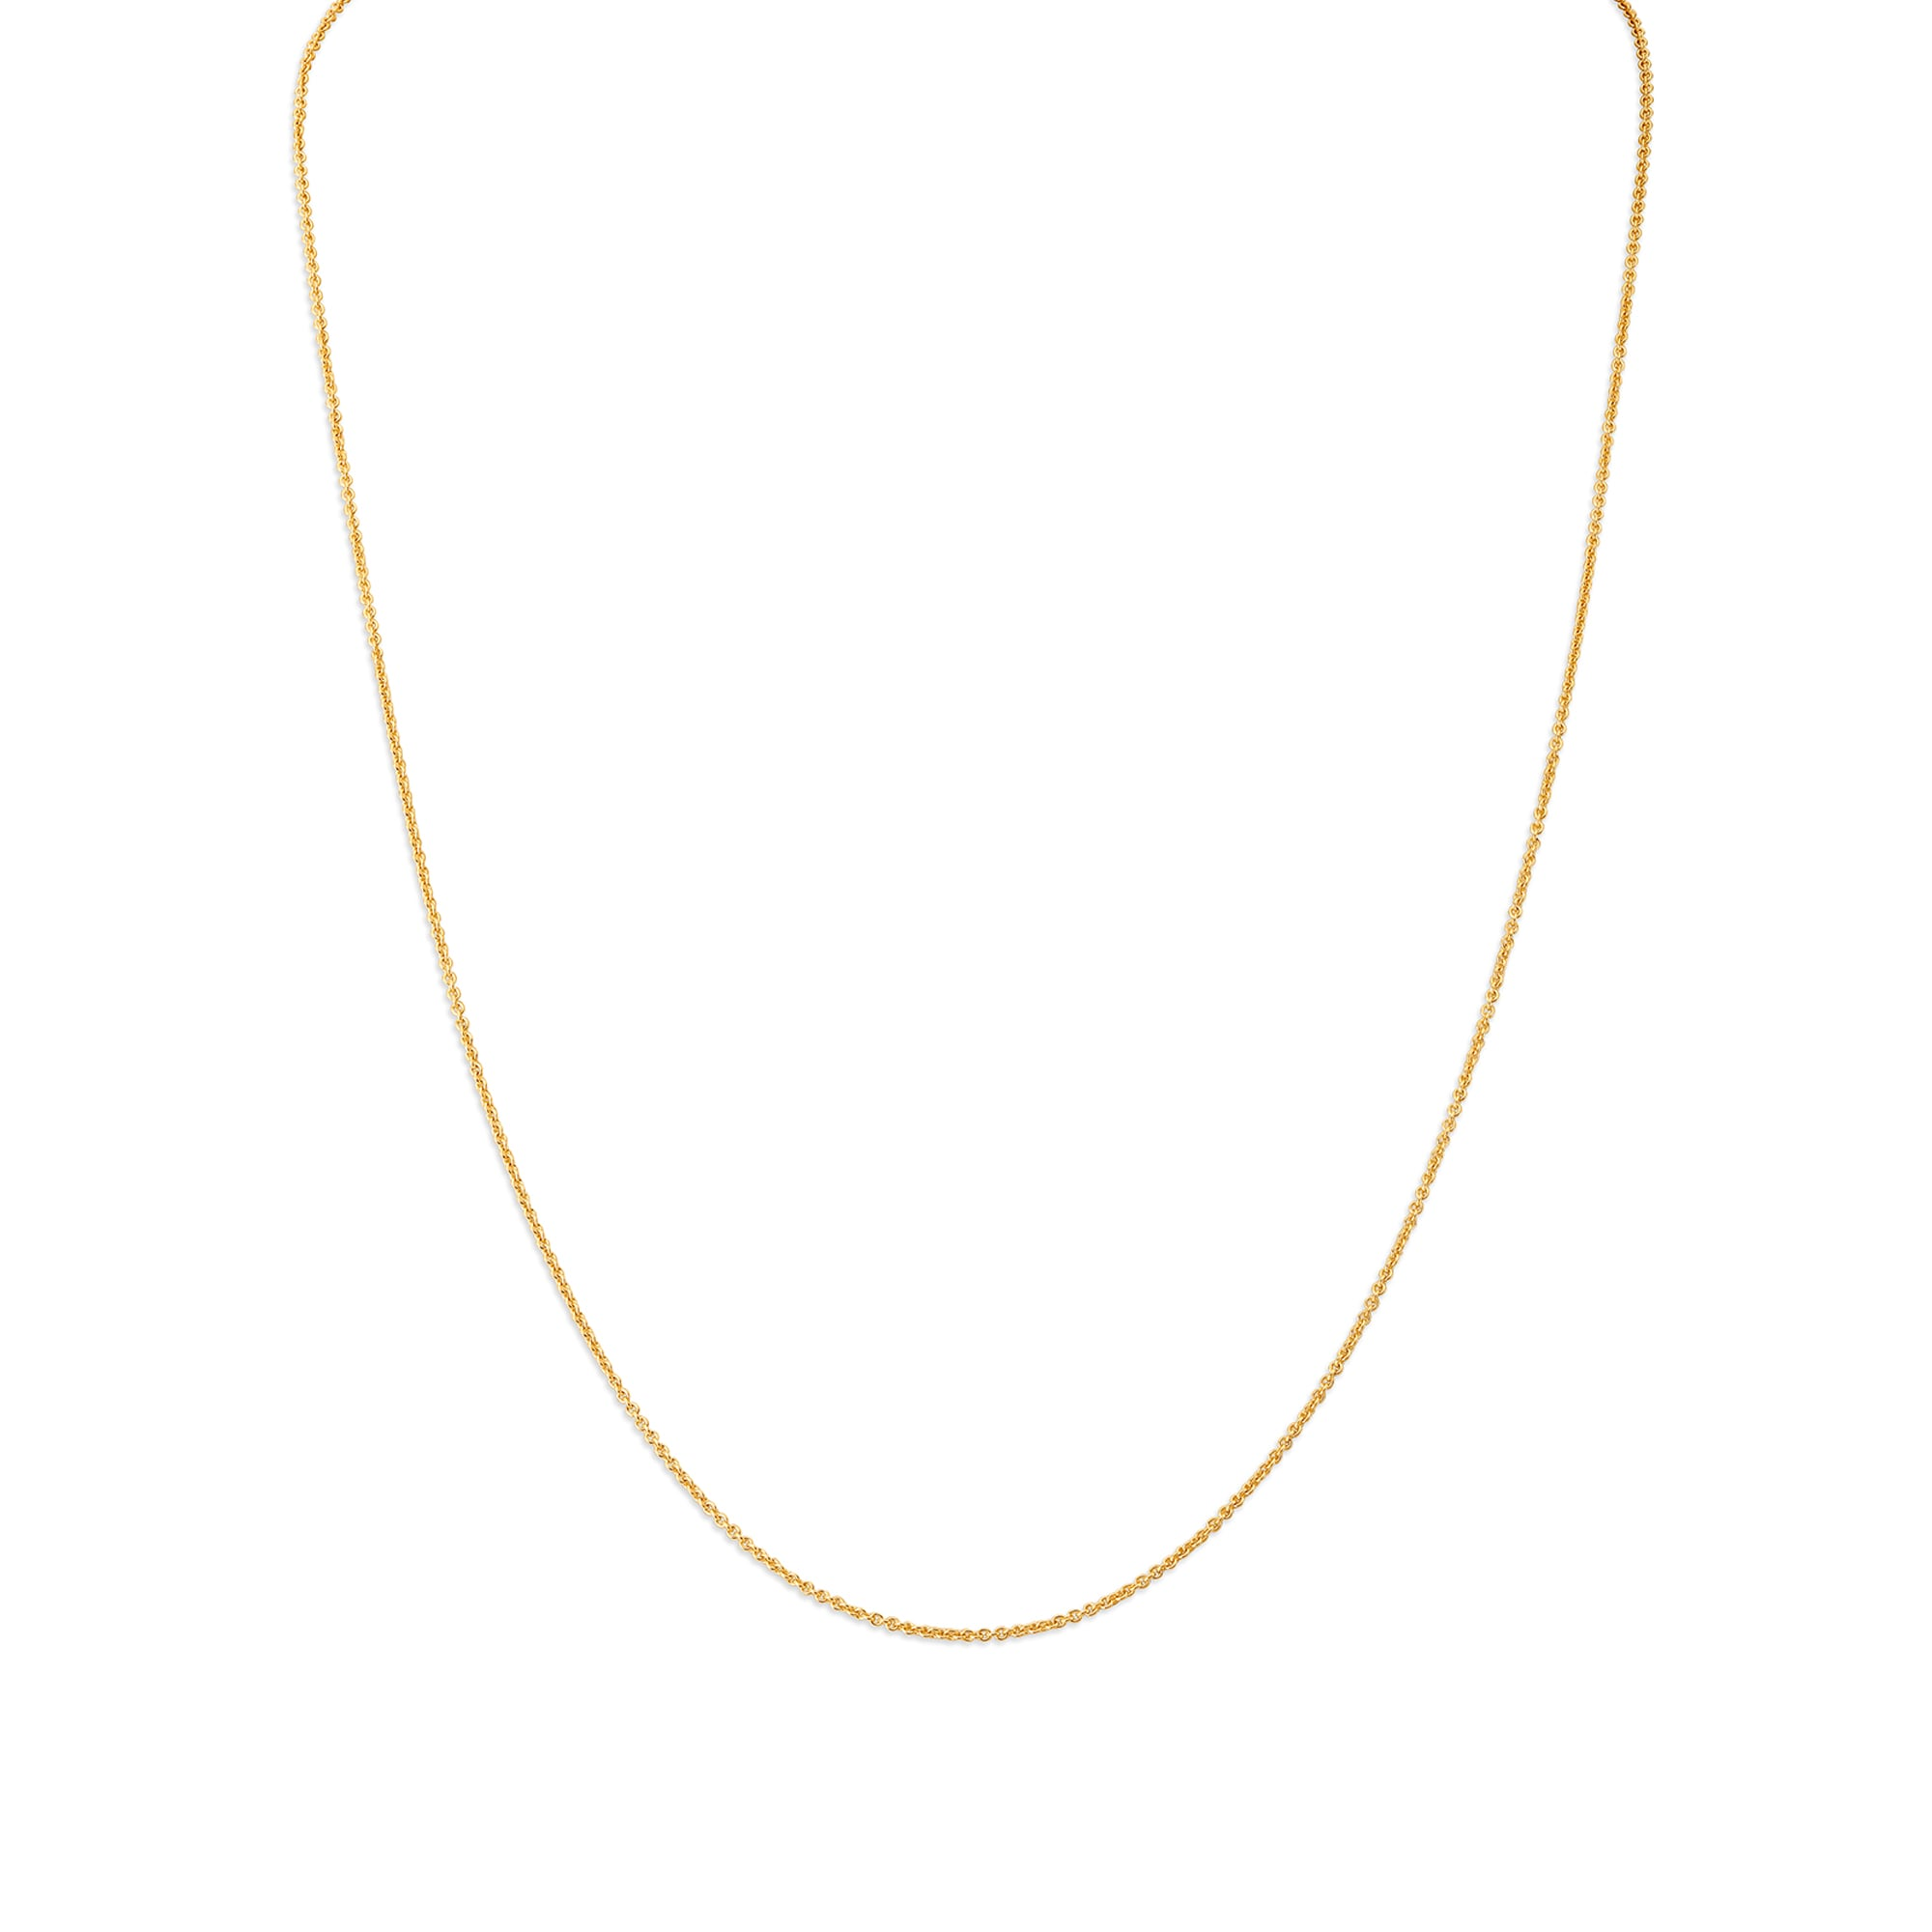 861d377b94212 Mia by Tanishq 14KT Yellow Gold Rolo Chain